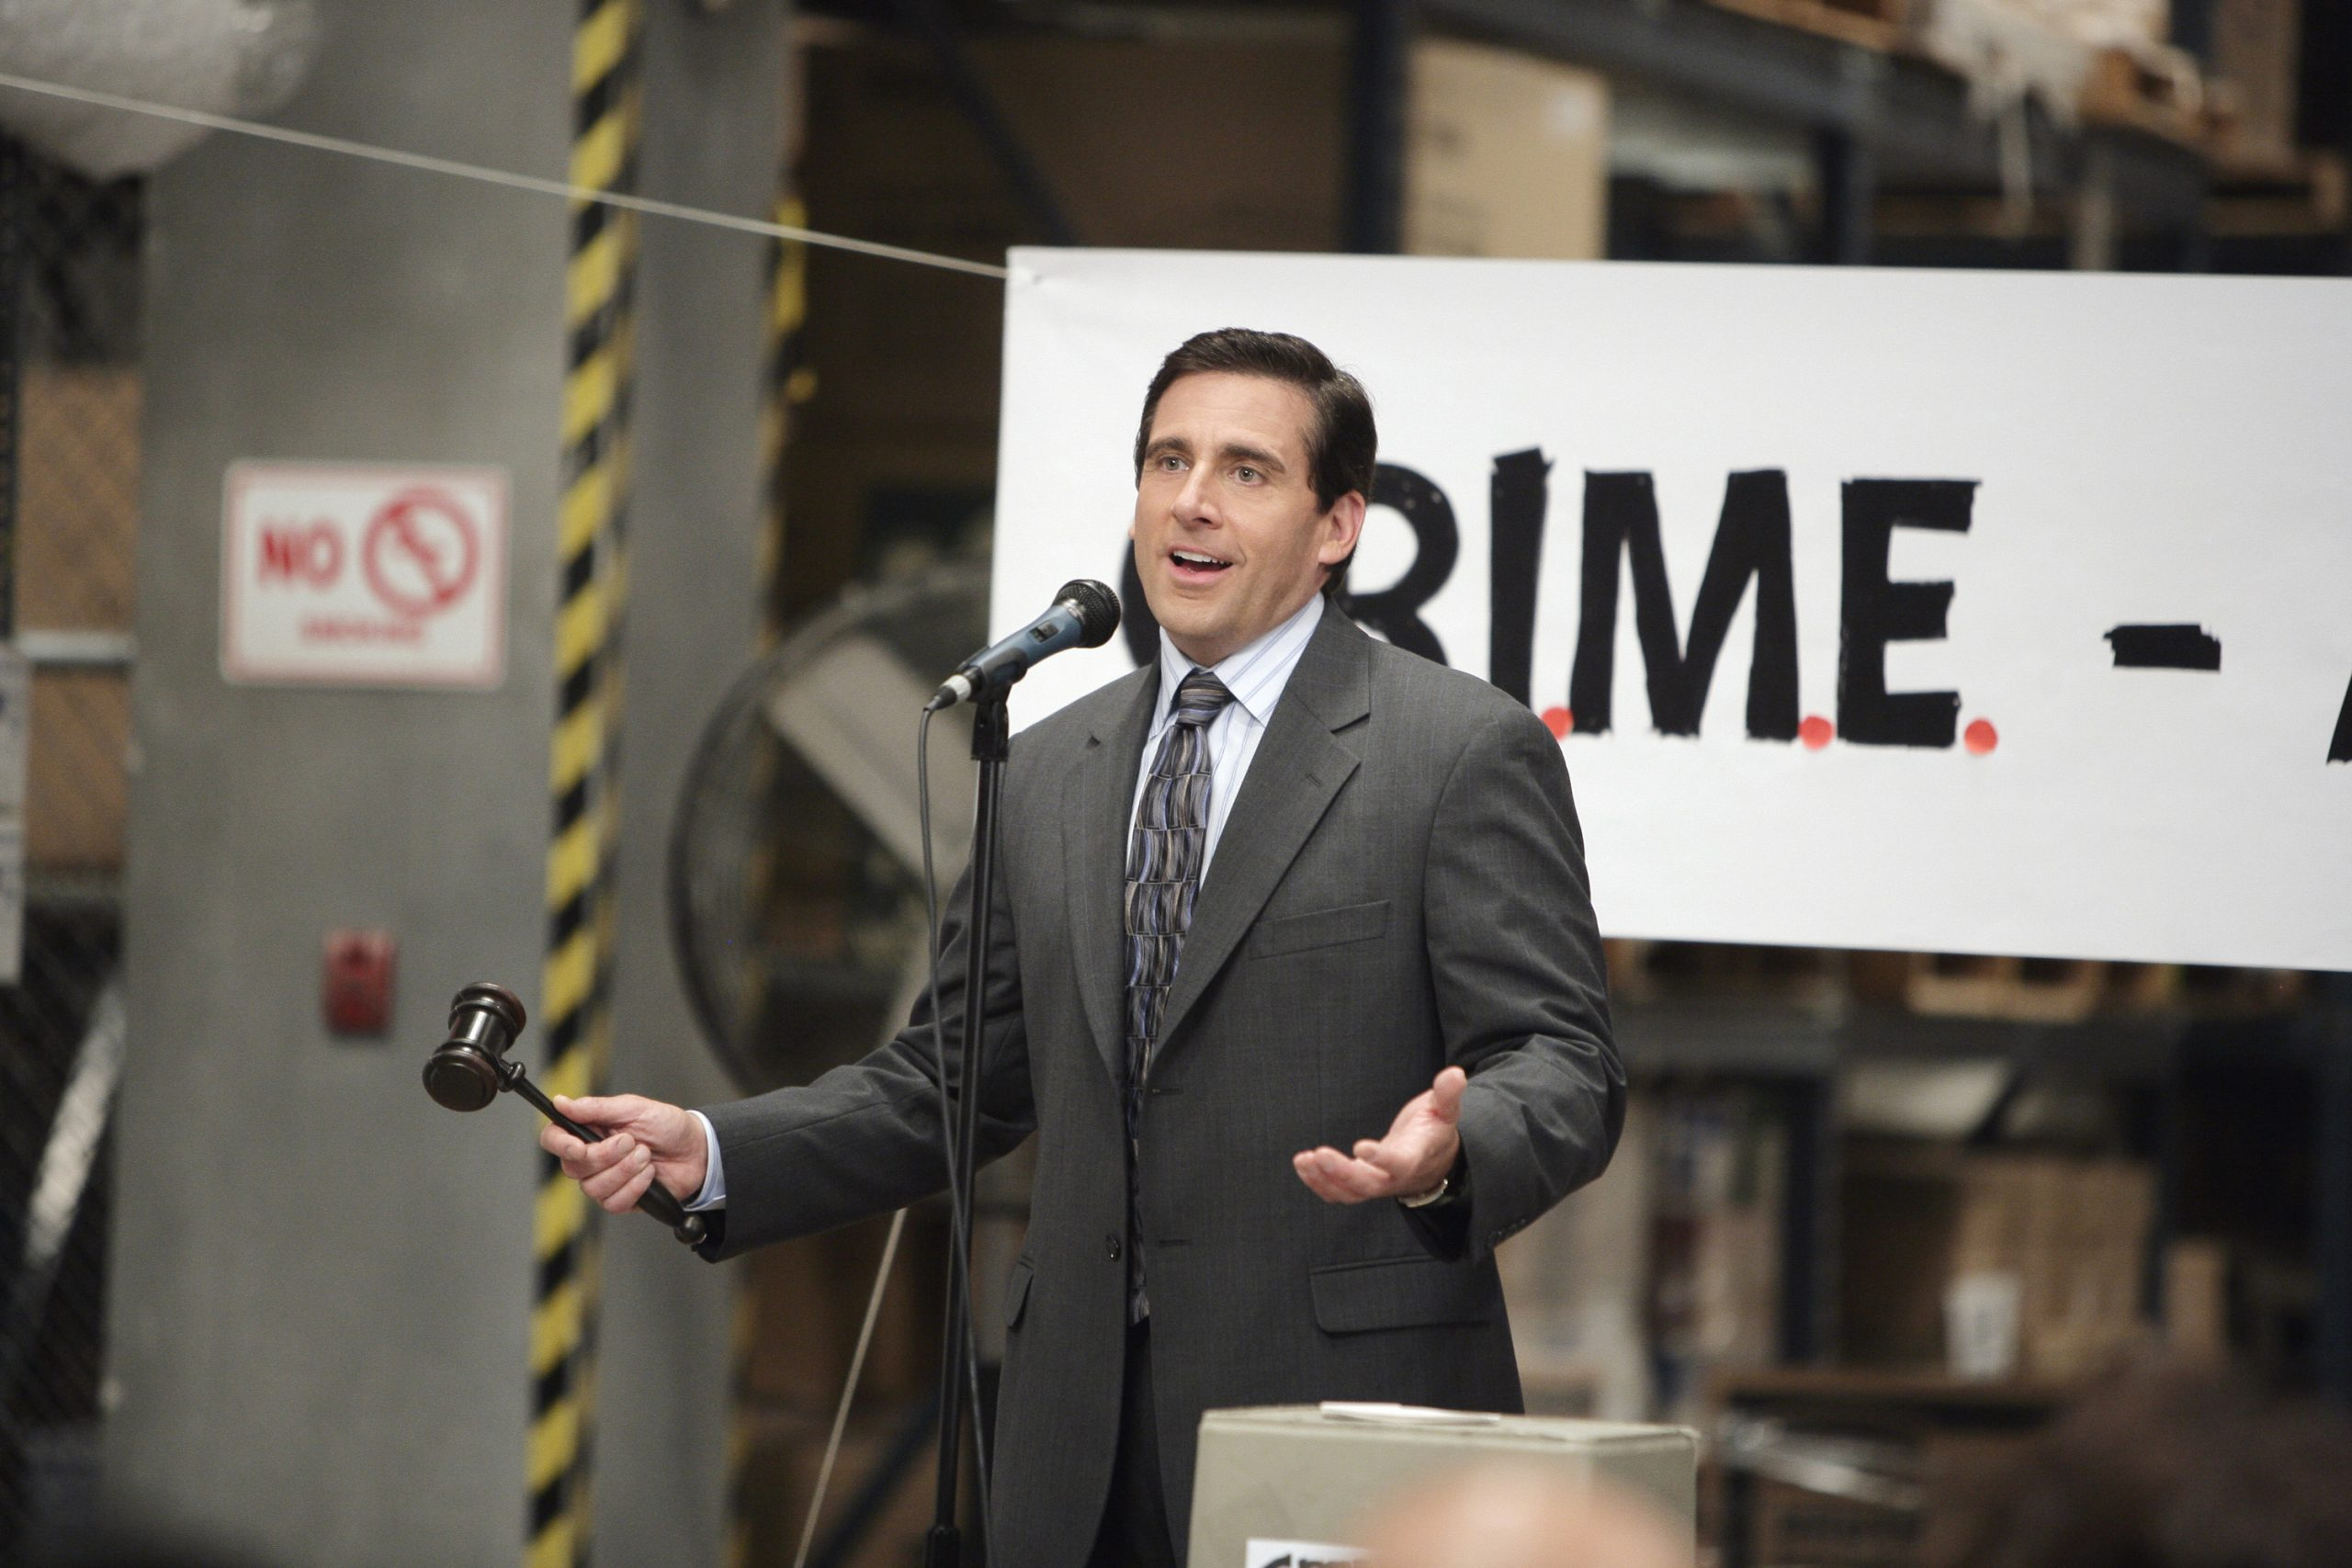 Steve Carell as Michael Scott on 'The Office' | Mitch Haddad/NBCU Photo Bank/NBCUniversal via Getty Images via Getty Images